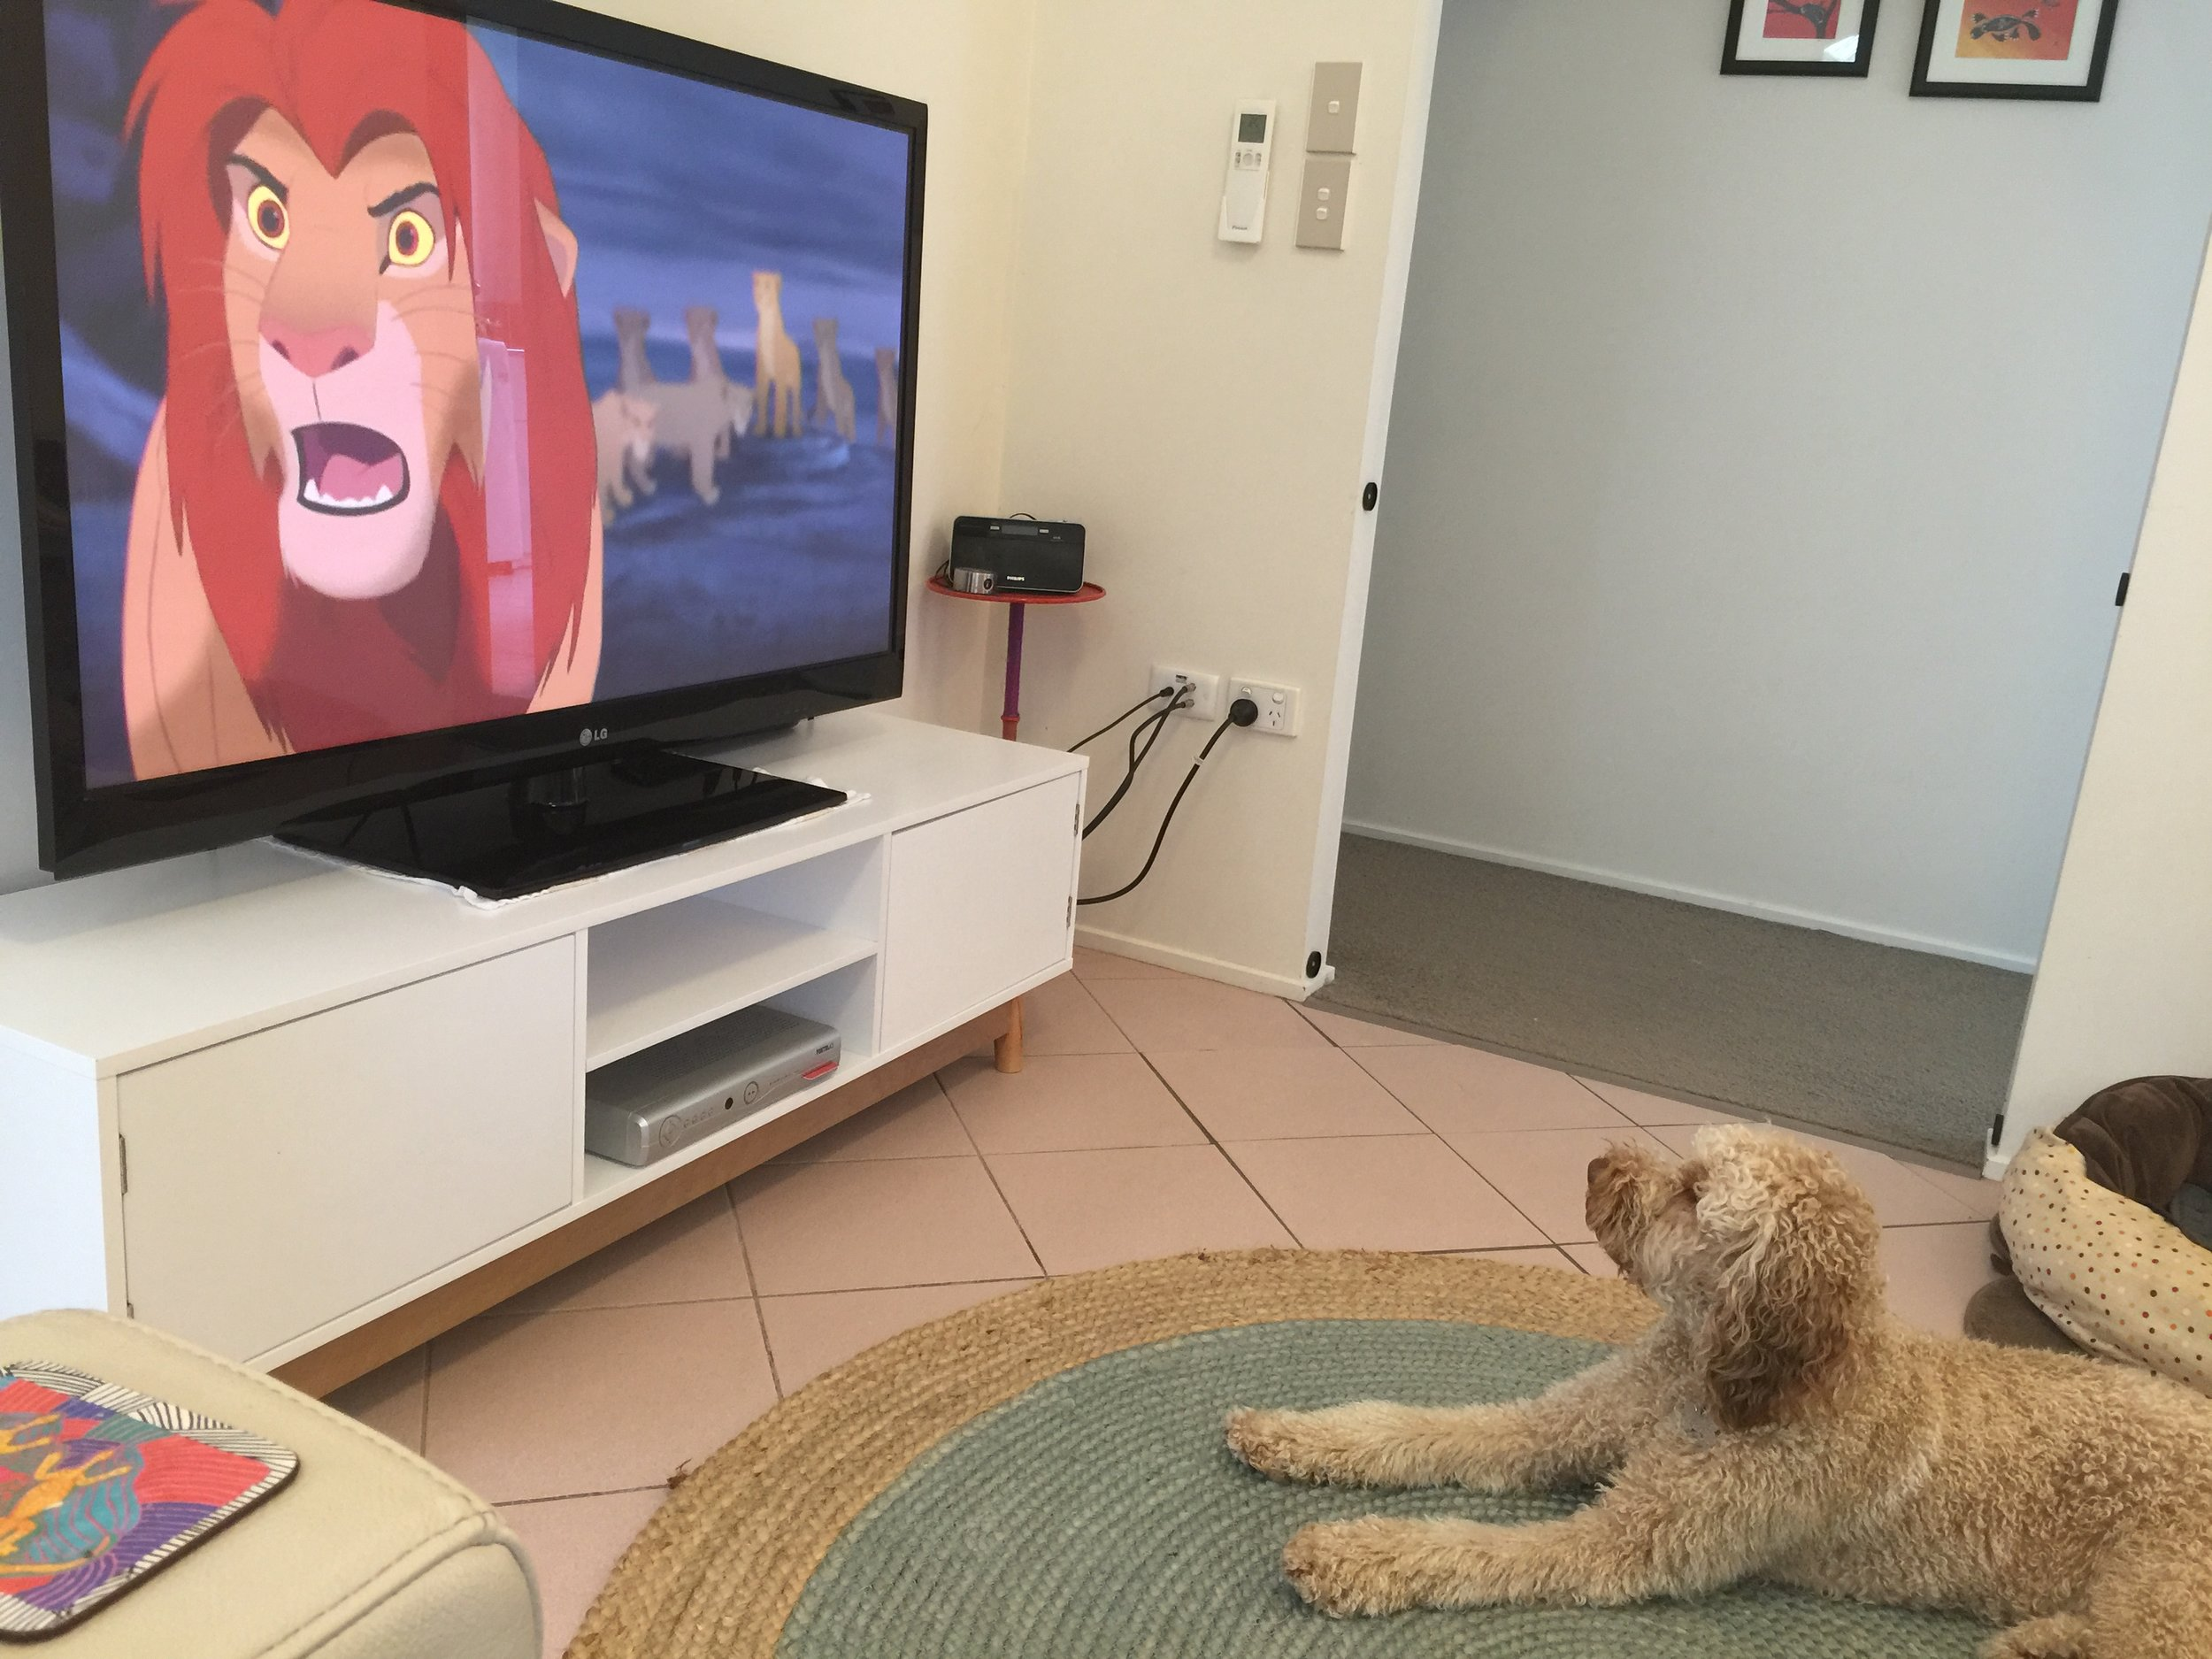 Leo watching his fav movie 'The Lion King'